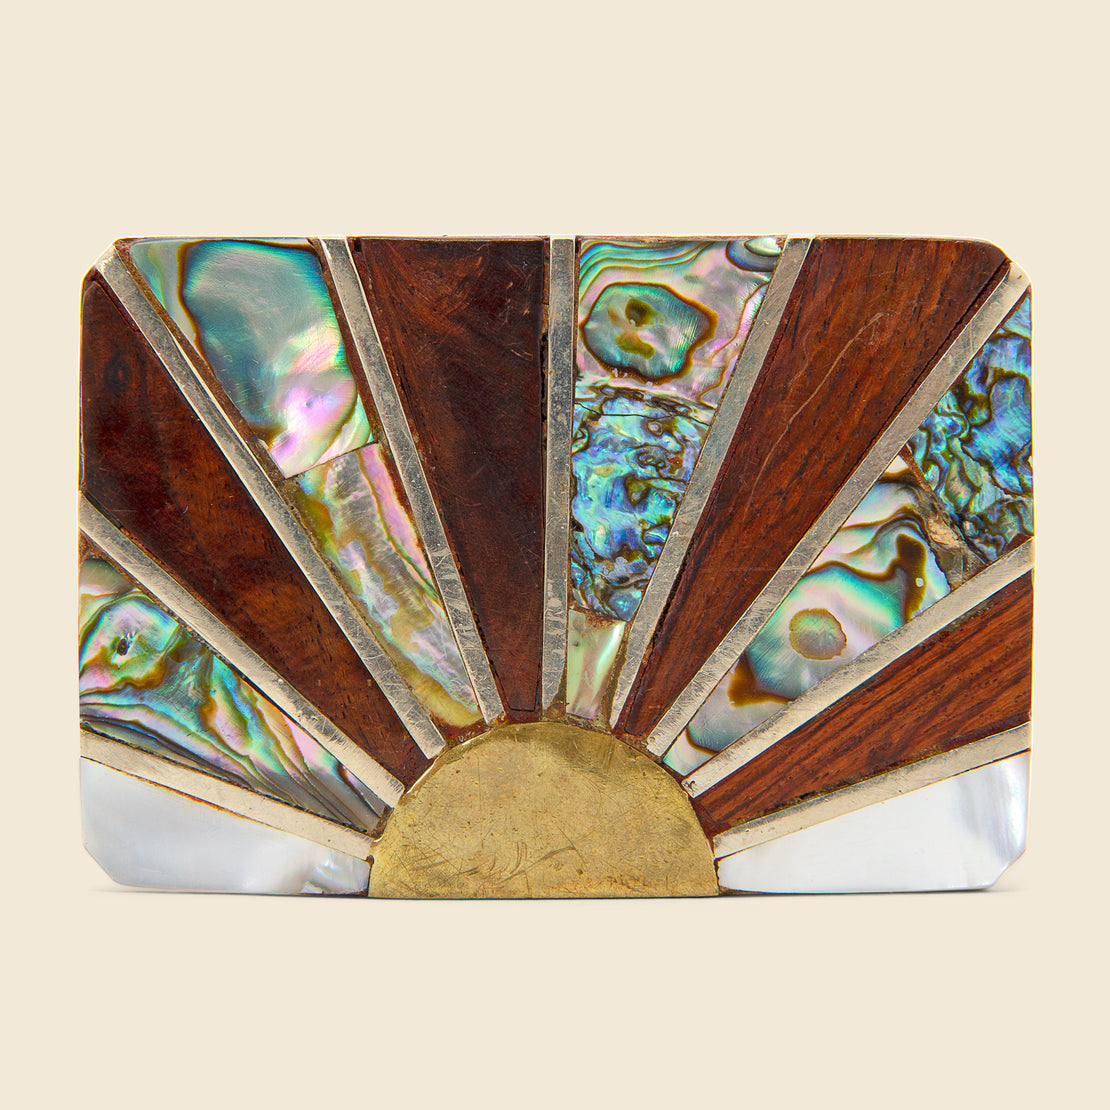 Vintage Brass Belt Buckle - Rising Sun